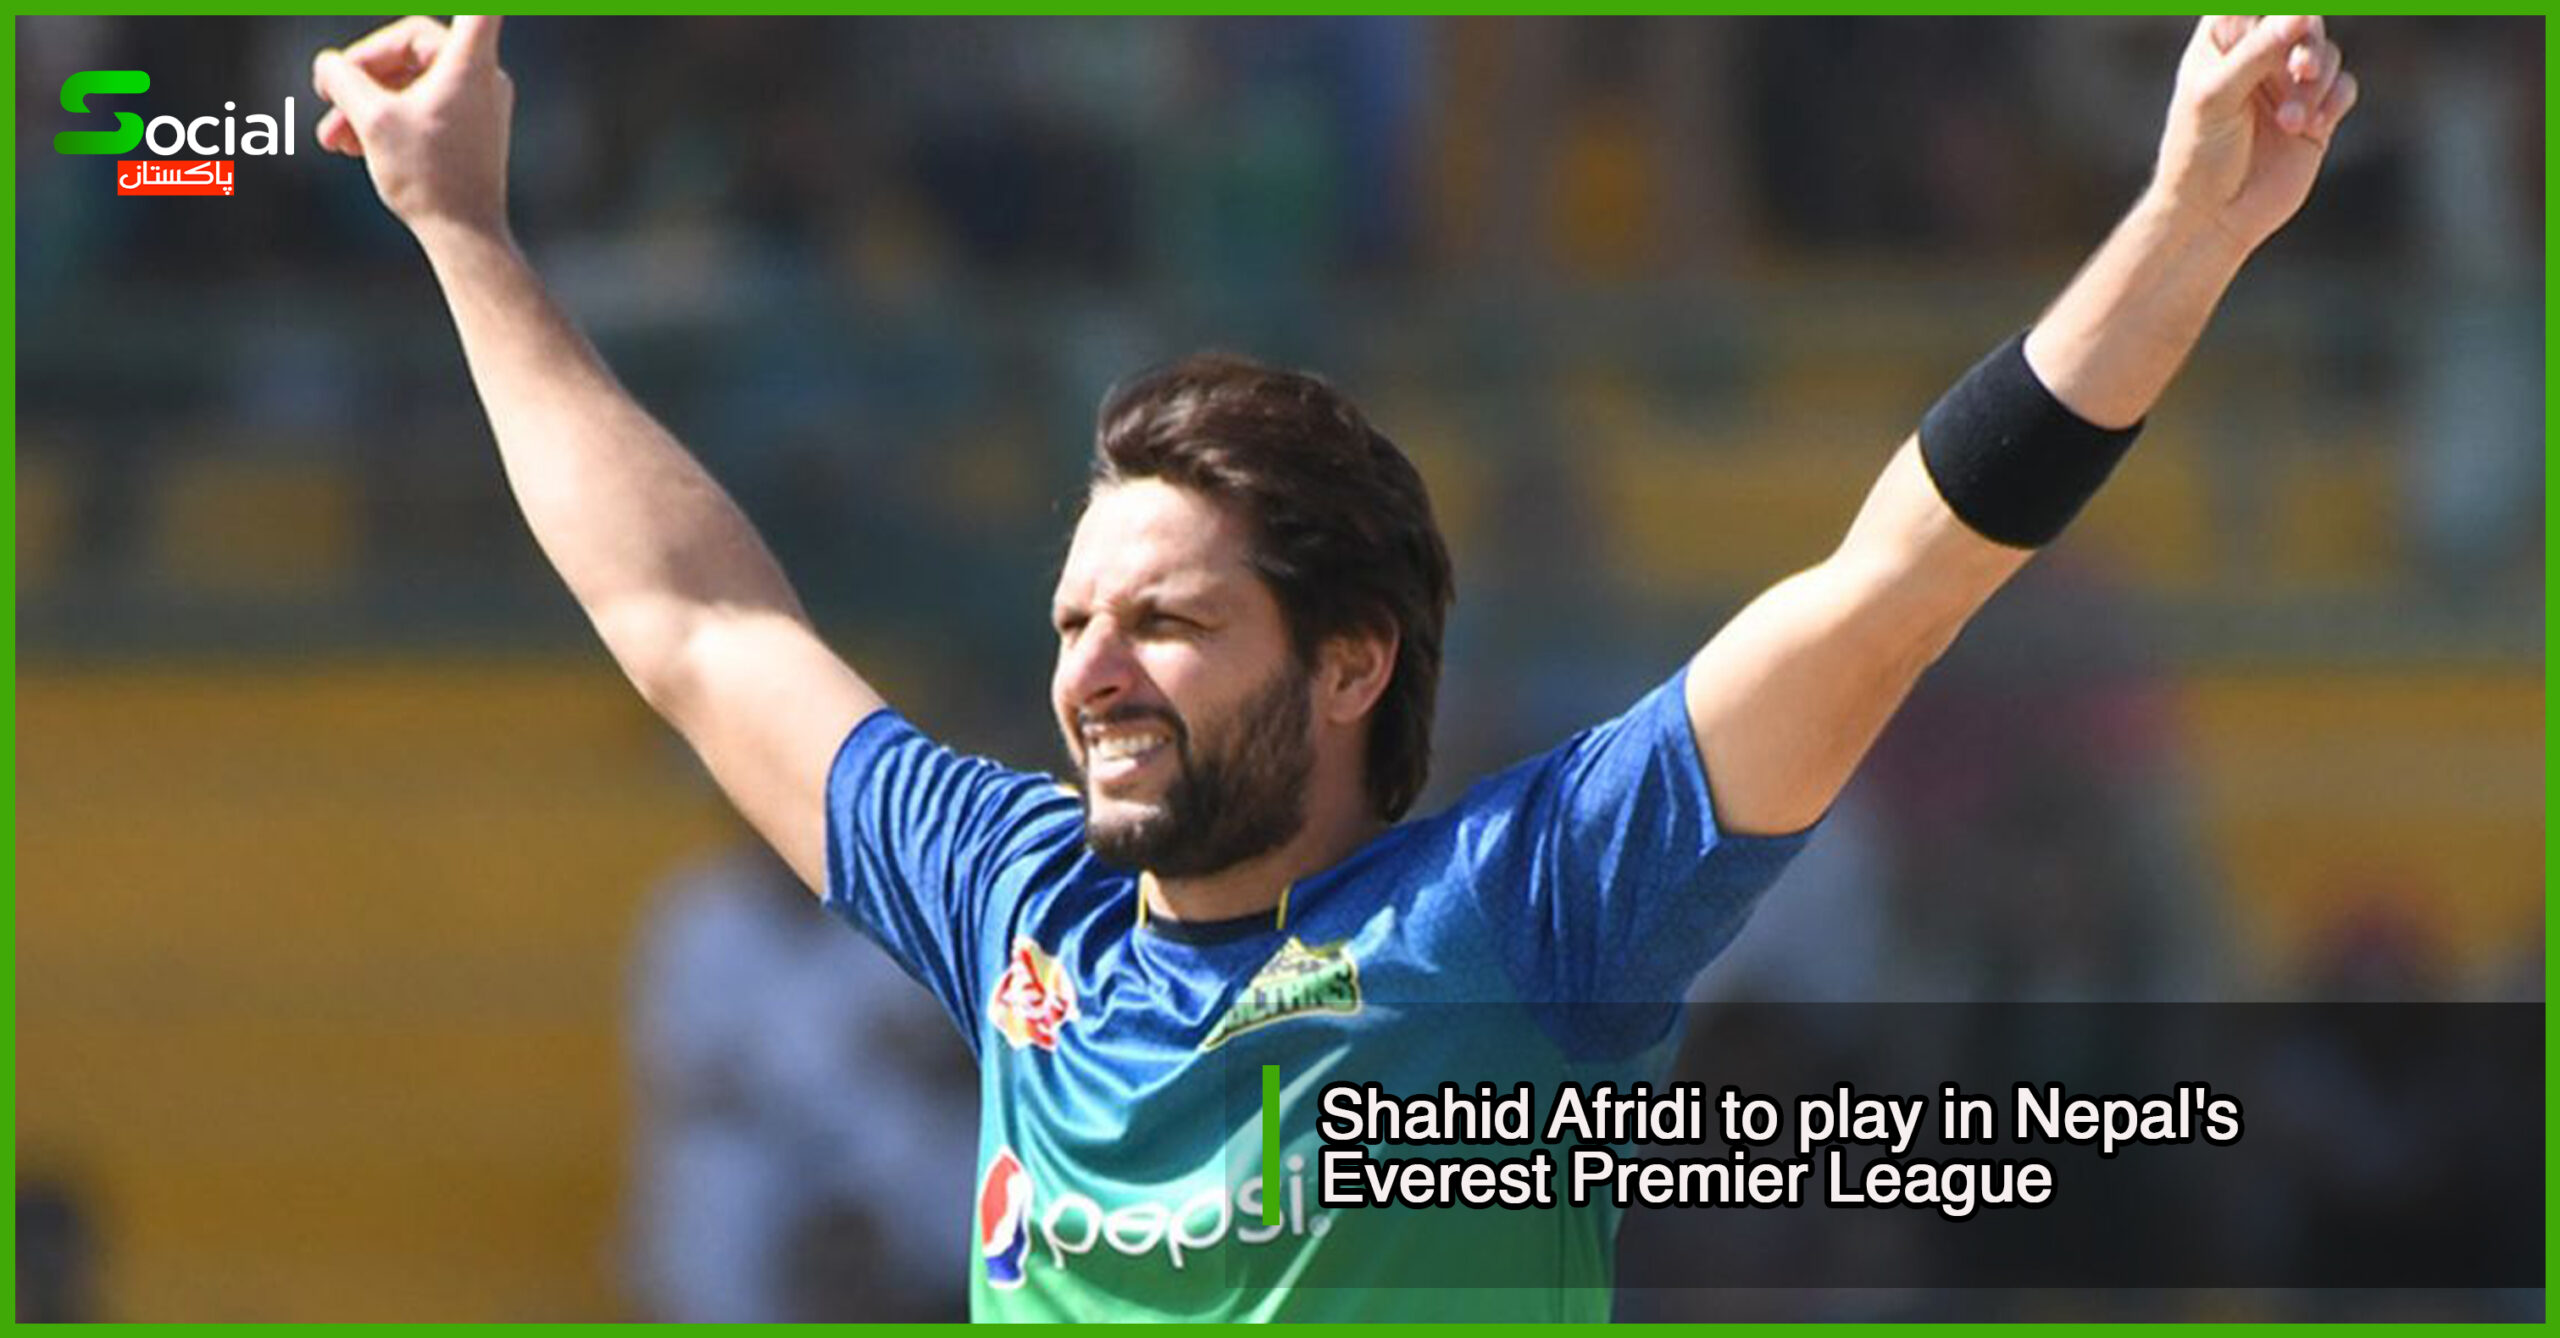 Afridi to play in Nepal's Everest Premier League